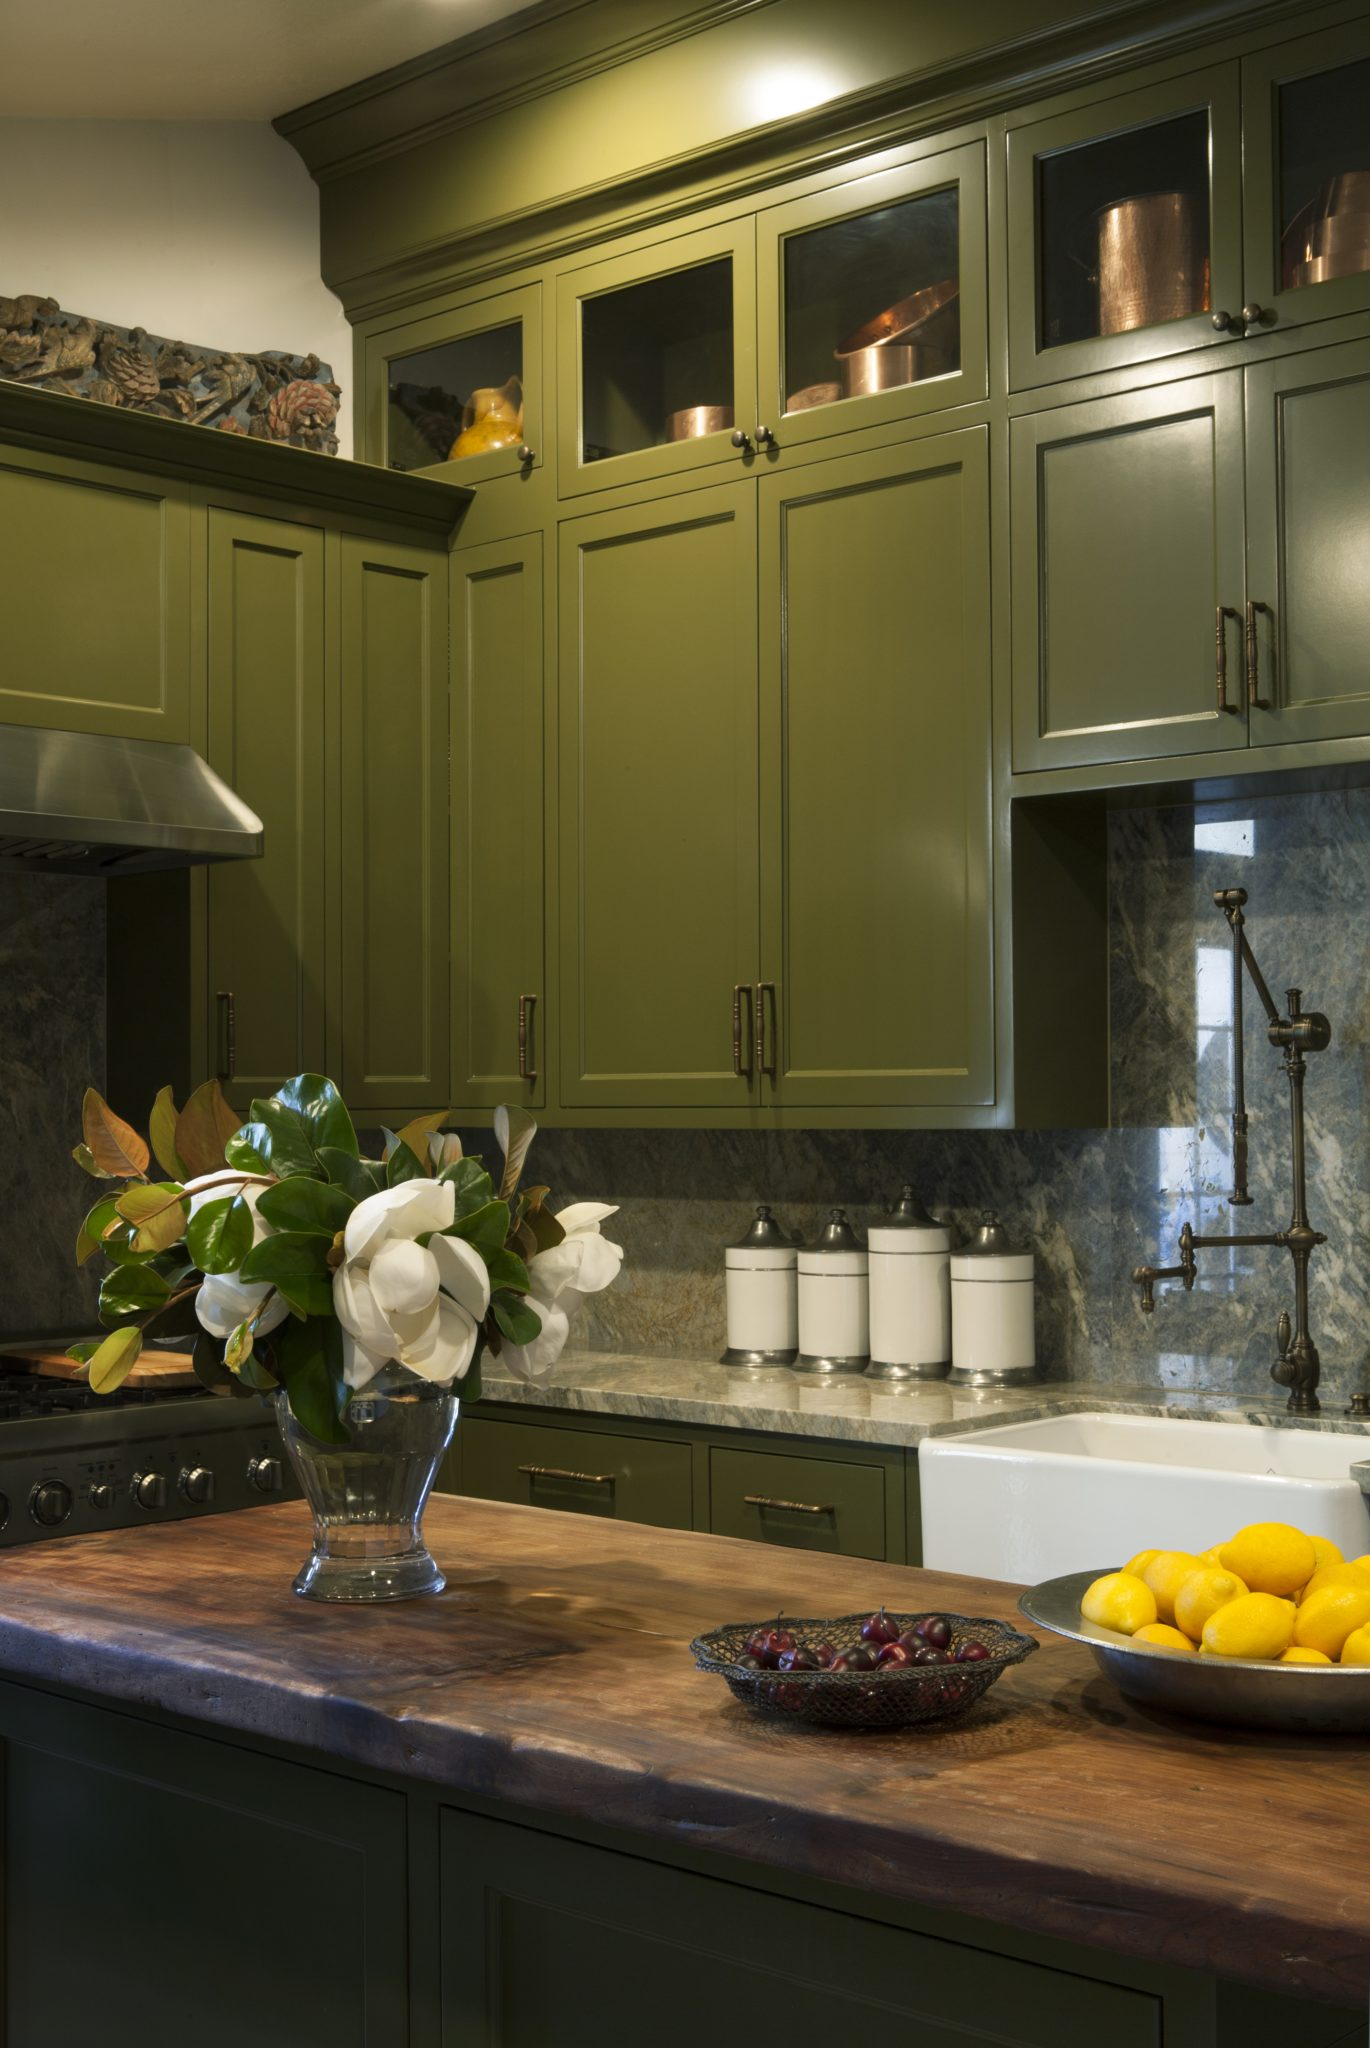 Windowless kitchen with olive green cabinetry by Blythe Home